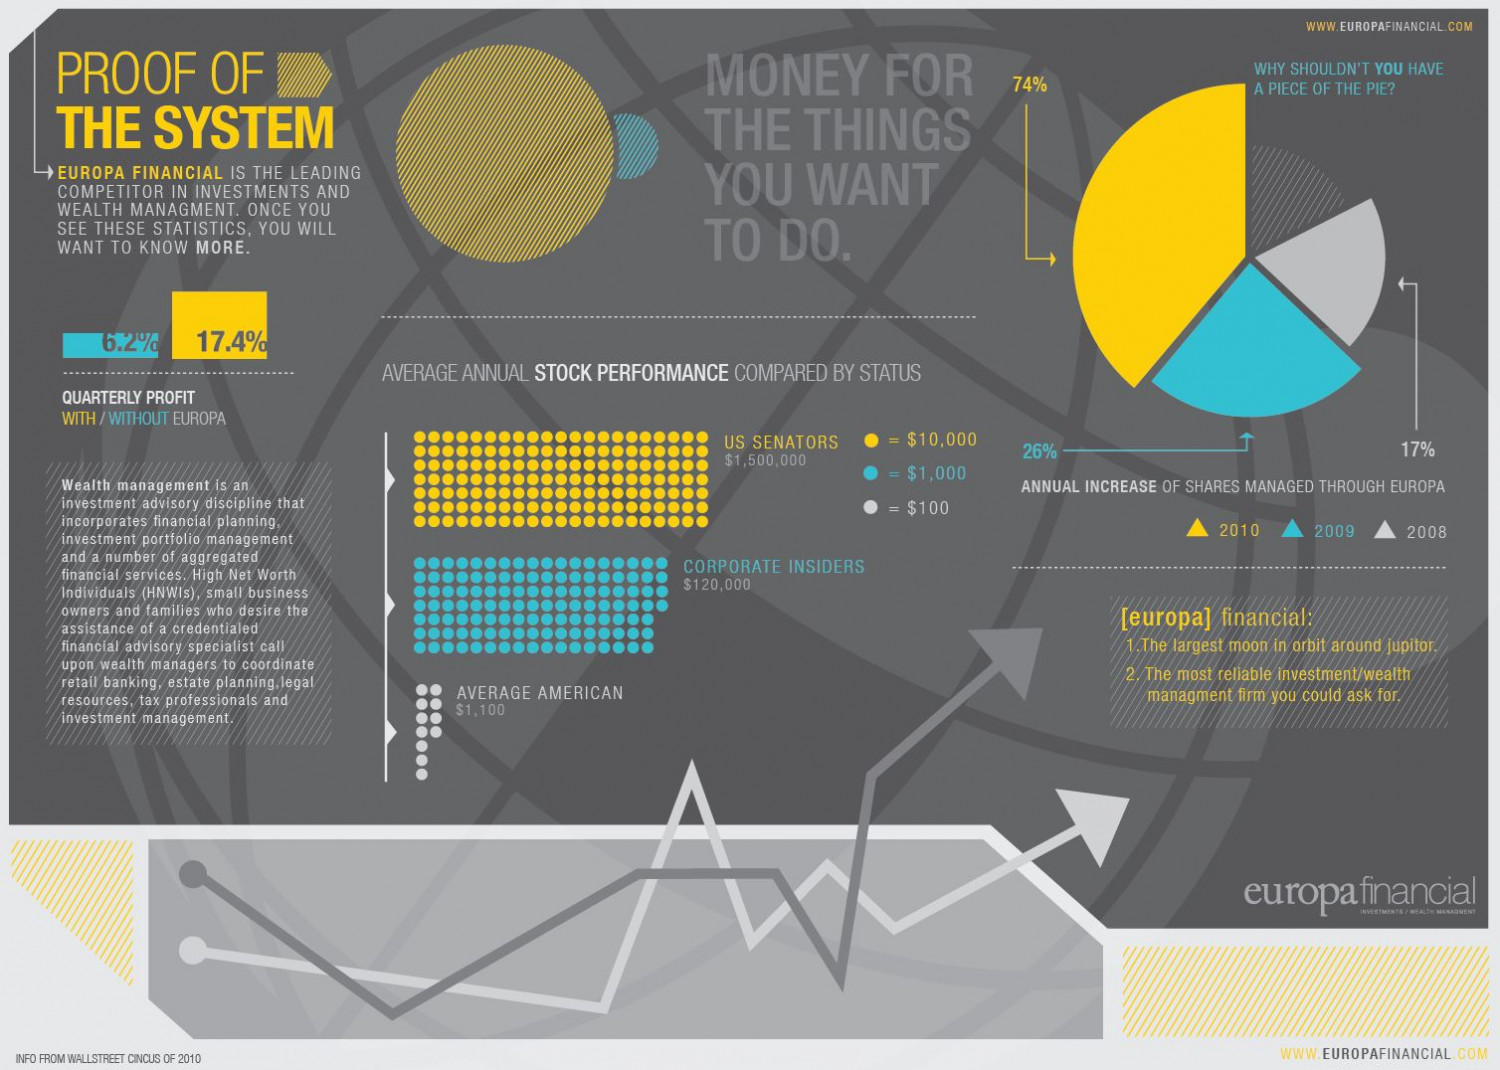 Proof of the System  Infographic